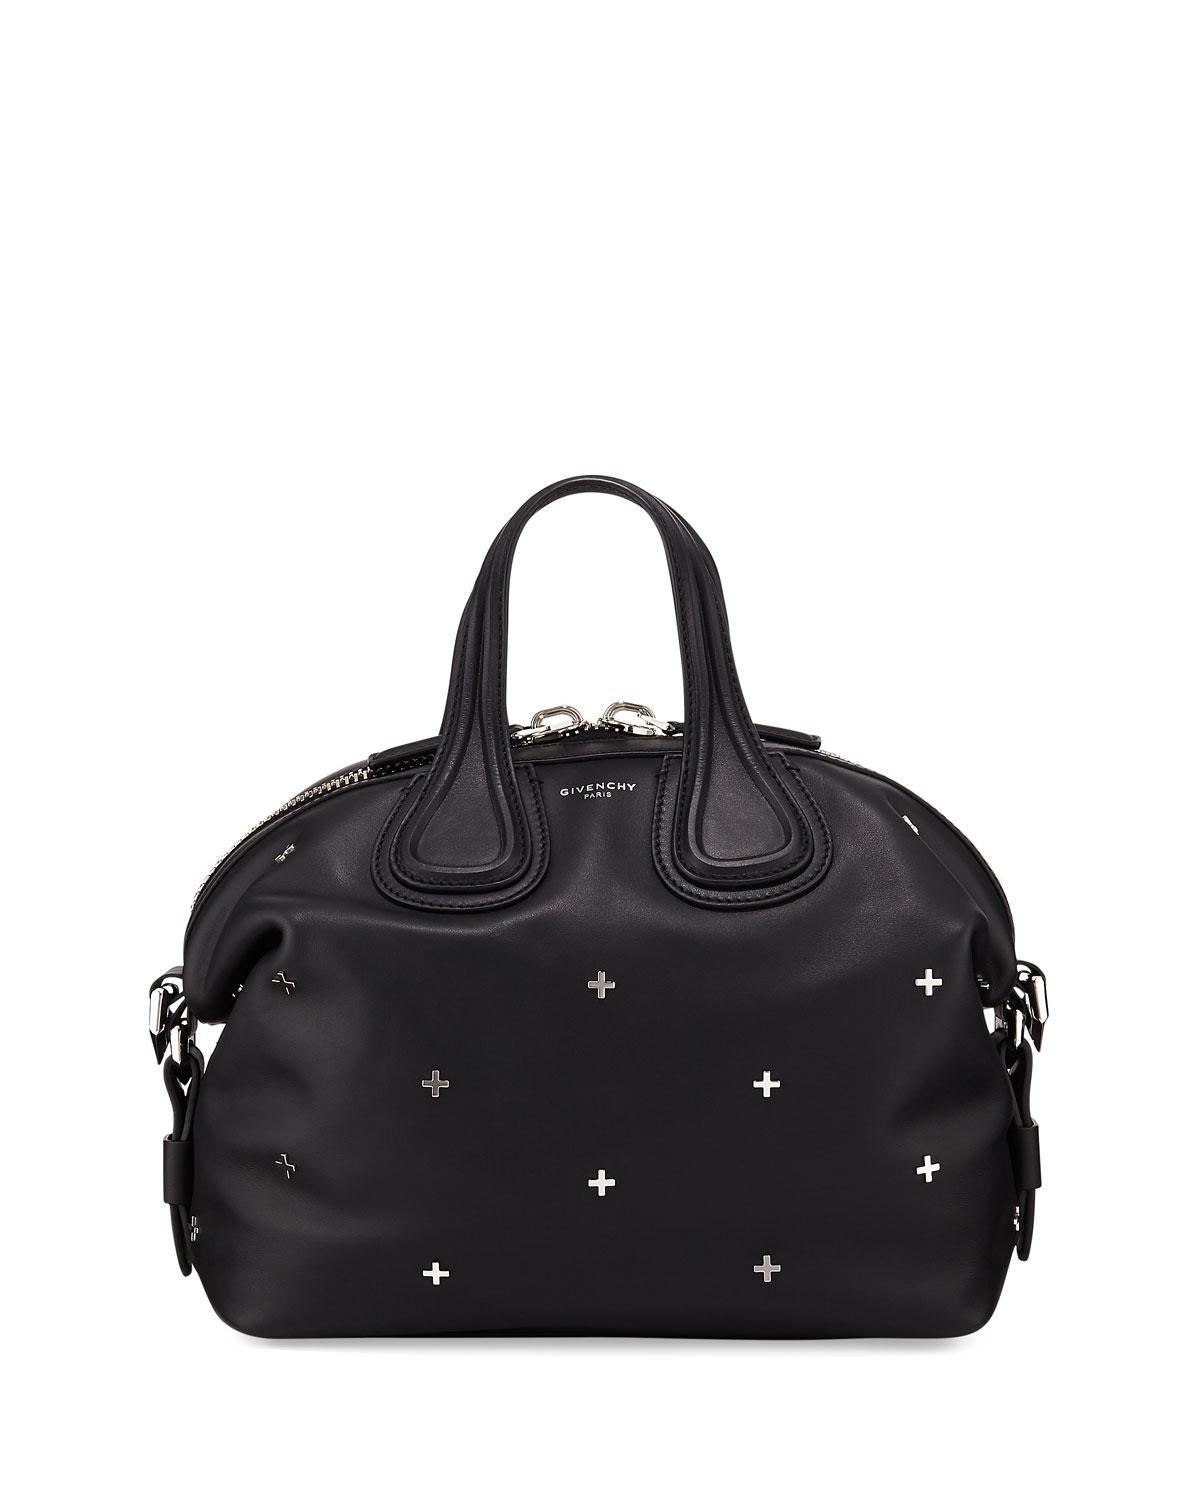 47558b7f5e1e Lyst - Givenchy Nightingale Small Studded Leather Satchel Bag in Black